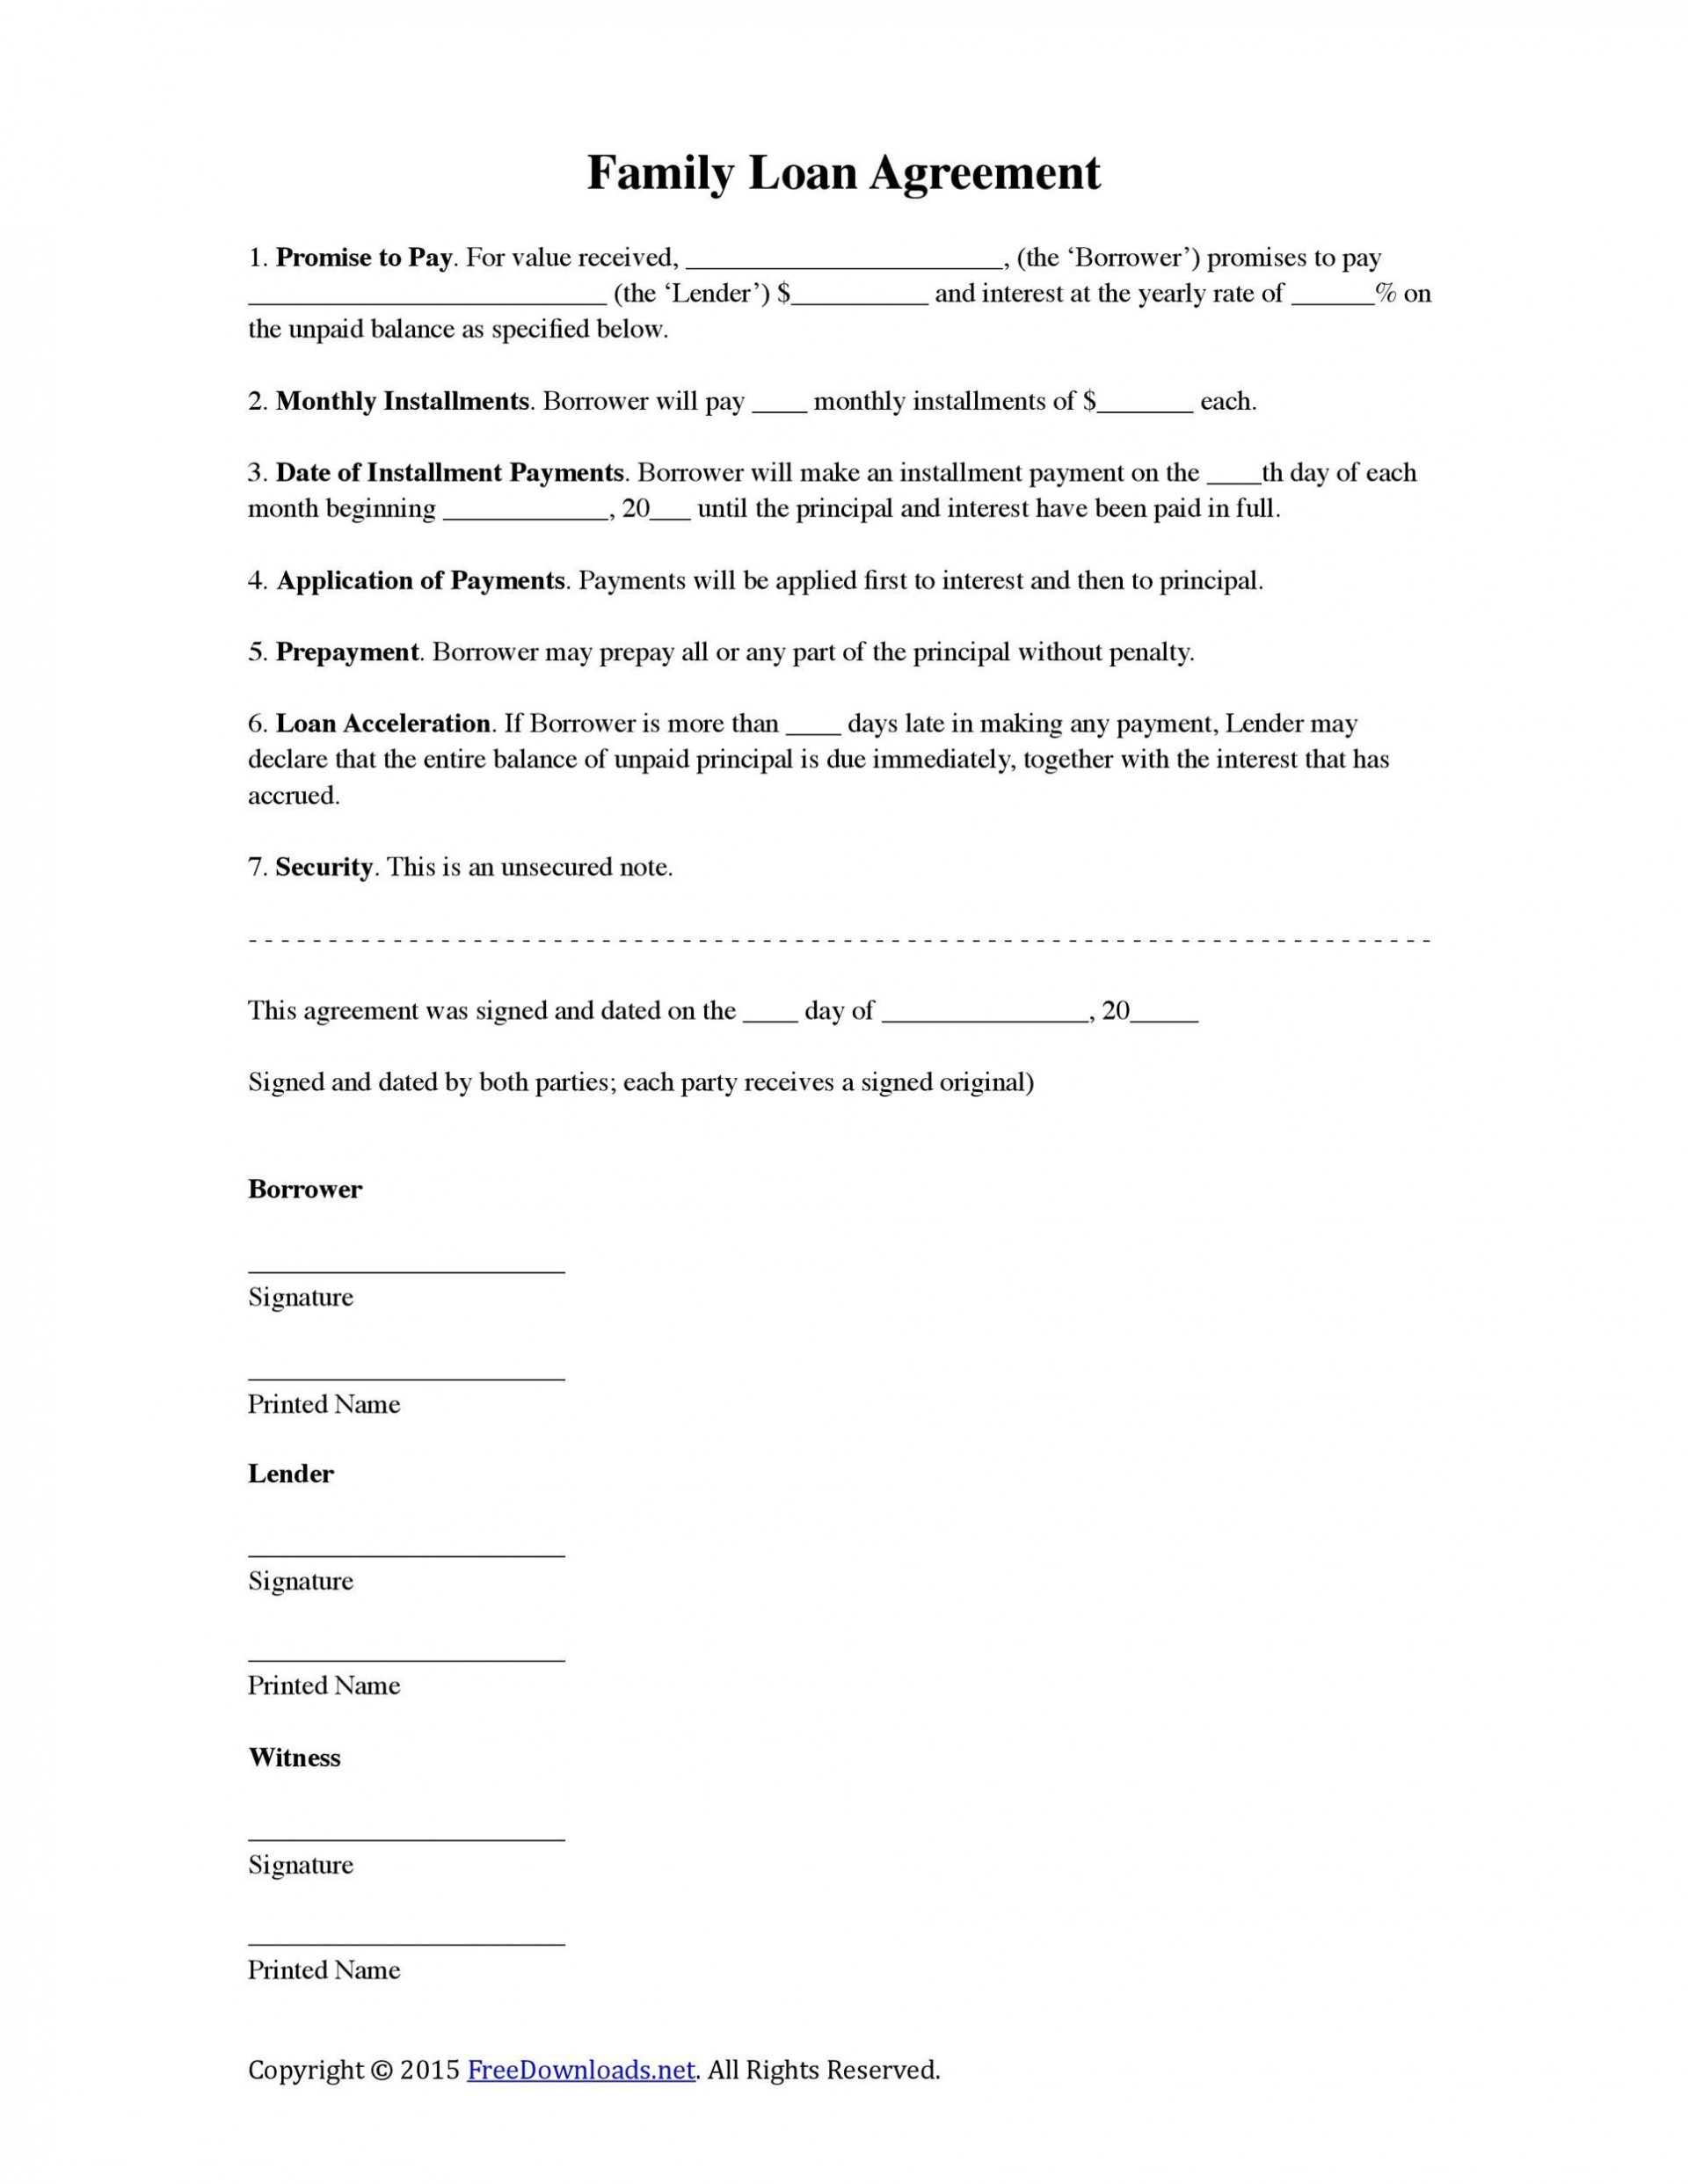 009 Stupendou Family Loan Agreement Template Uk Free High Definition 1920